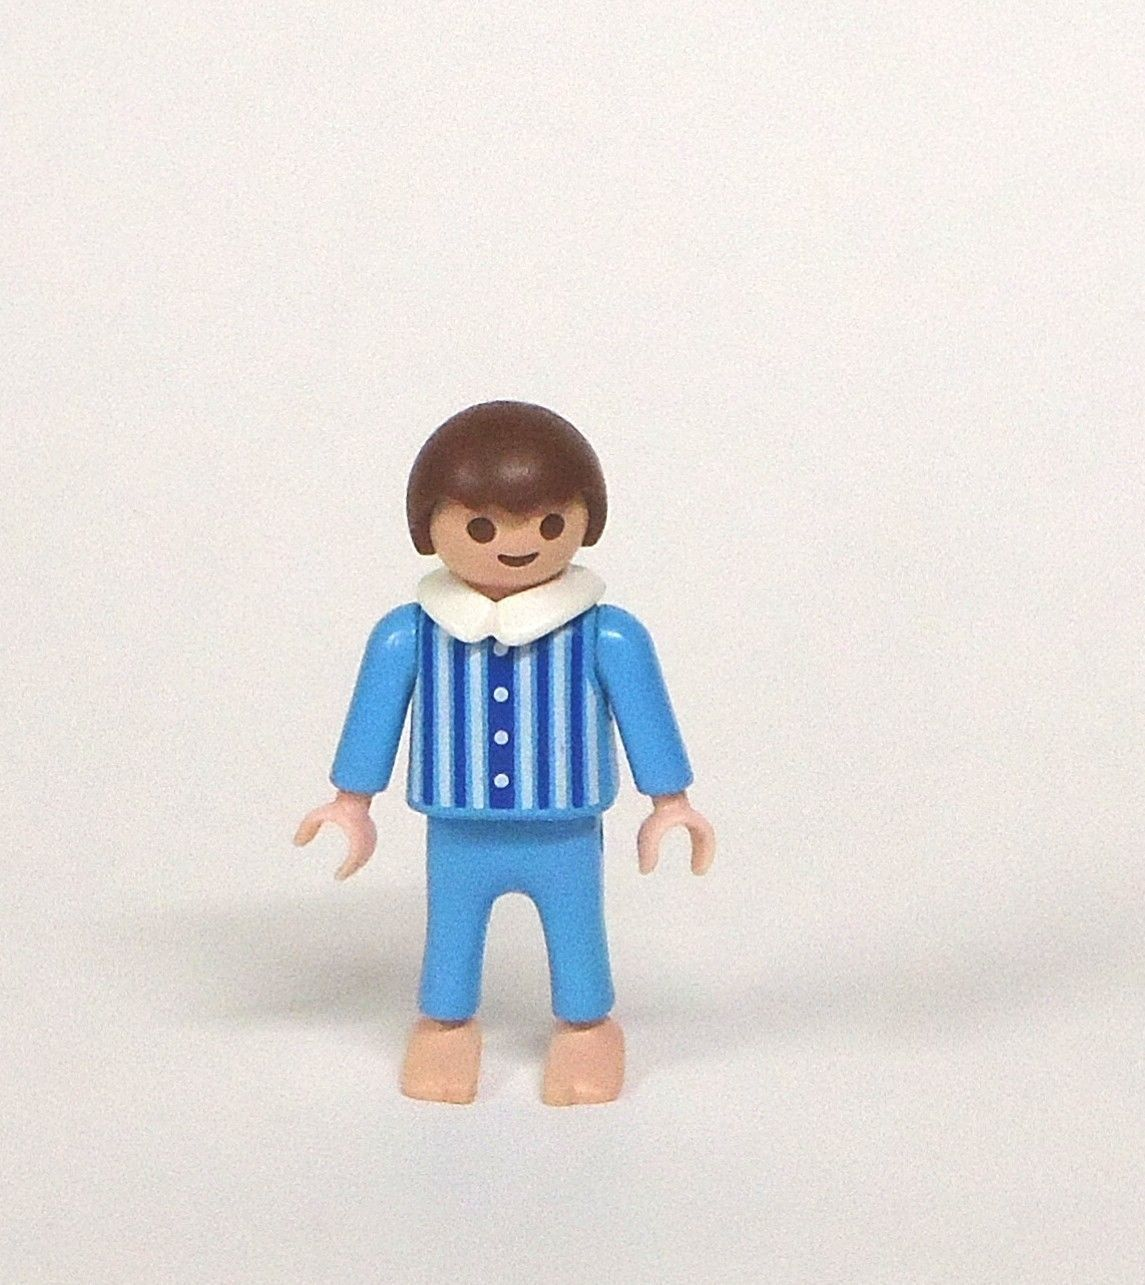 Playmobil 5300 Victorian Dollhouse 5324 Bathroom Bath Child Boy